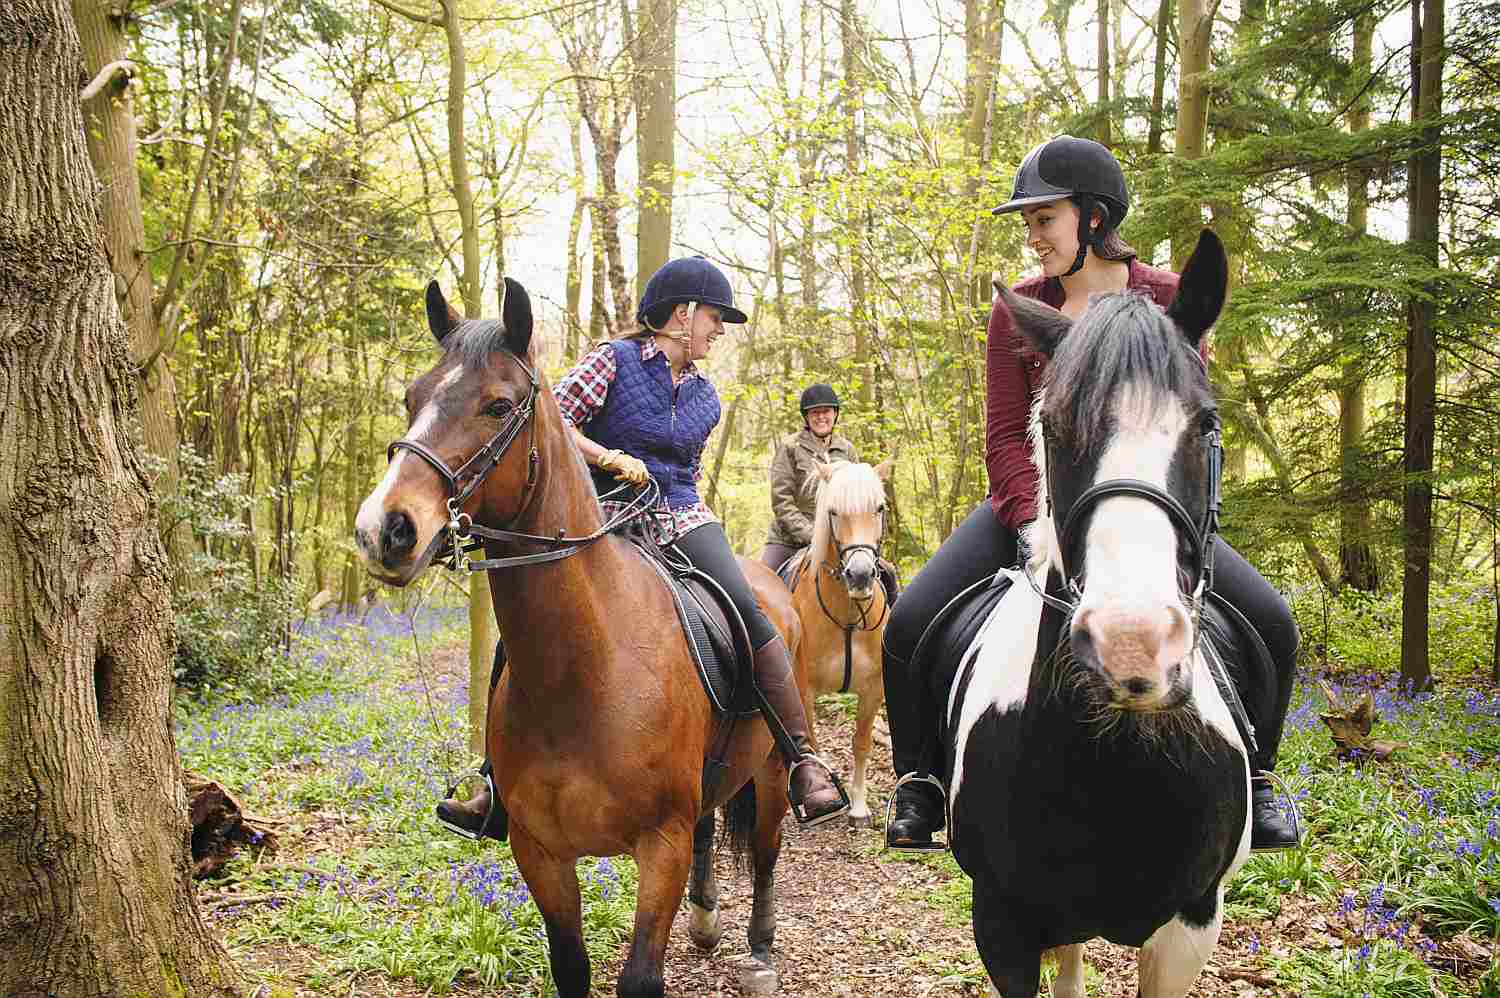 common questions about riding horses answered